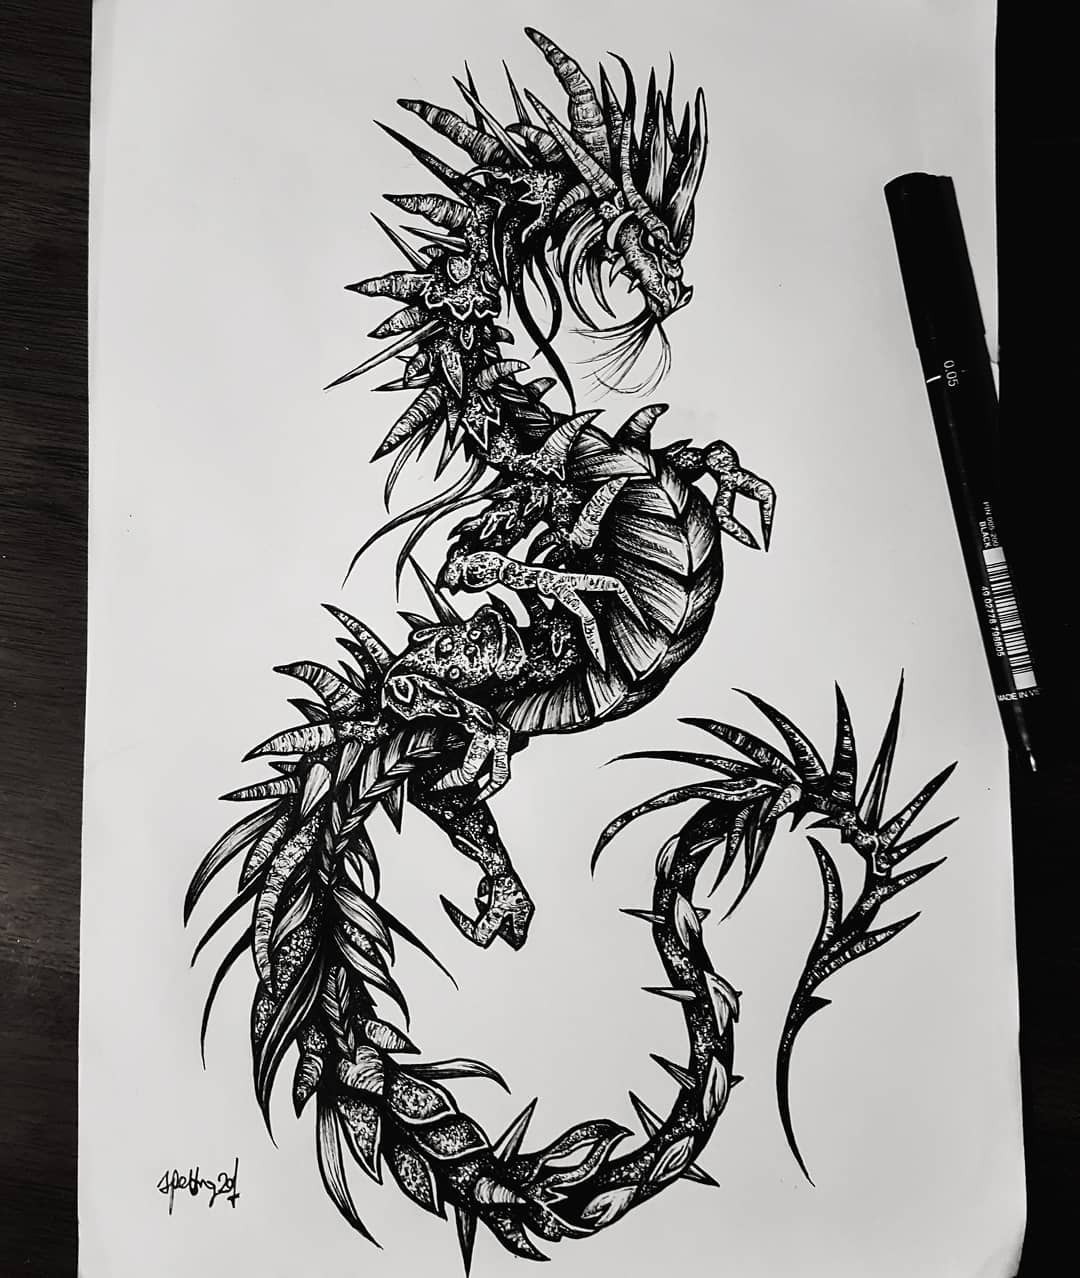 """From Scottish Folklore: The Beithir. It is described as """"the largest and most deadly kind of serpent""""or as a dragon (but without certain typical draconic features such as wings or fiery breath). It dwells in mountainous caves andglens and is equipped with a venomous sting. If a person is stung then they must head for the nearest body of water such as a river orloch. If they can reach it before the beithir does then they are cured, but if the monster reaches it first then the victim is doomed. The beithir is considered one of thefuath (a term for the various monsters and spirits associated with water). Design also available, email goatskullshirley@gmail.com for details 🦇🦇🦇 . . . . . . occultarcana artesobscurae btattooing flashworkers blackwork blackworkers blxckink darkartists darkart darkarts thedarkestwork onlyblackart onlythedarkest stabmegod blacktattoo metalhead blackmetal occult blxckink witchythings darkartistries edinburgh goth gothic studioxiii dragon mythology @artesobscurae @occultarcana @thedarkestwork @onlythedarkest @black_tattoo_culture @darkartists @wiccac @stabmegod"""